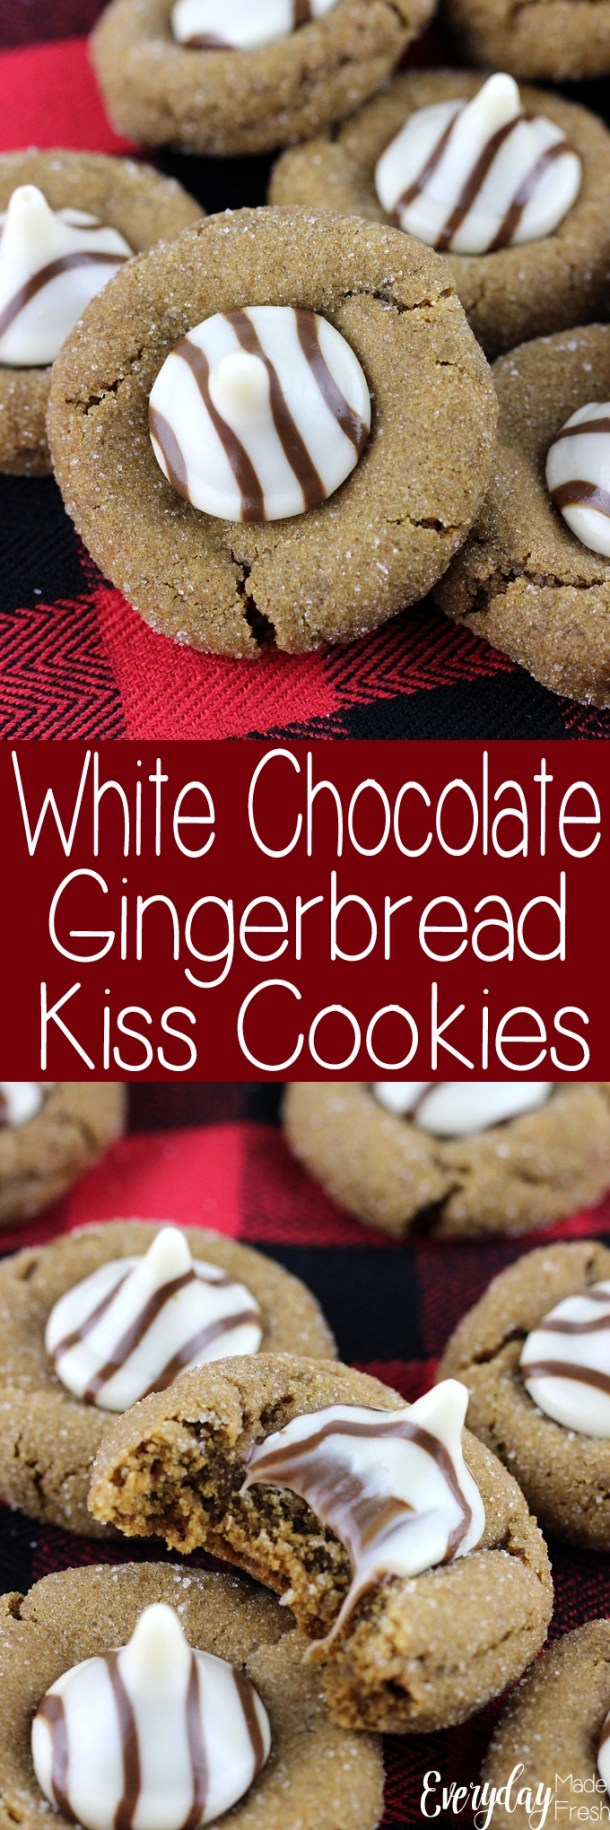 These White Chocolate Gingerbread Kiss Cookies are the cookies for those that love ginger! The white chocolate kiss candies are the perfect finishing touch!  | EverydayMadeFresh.com